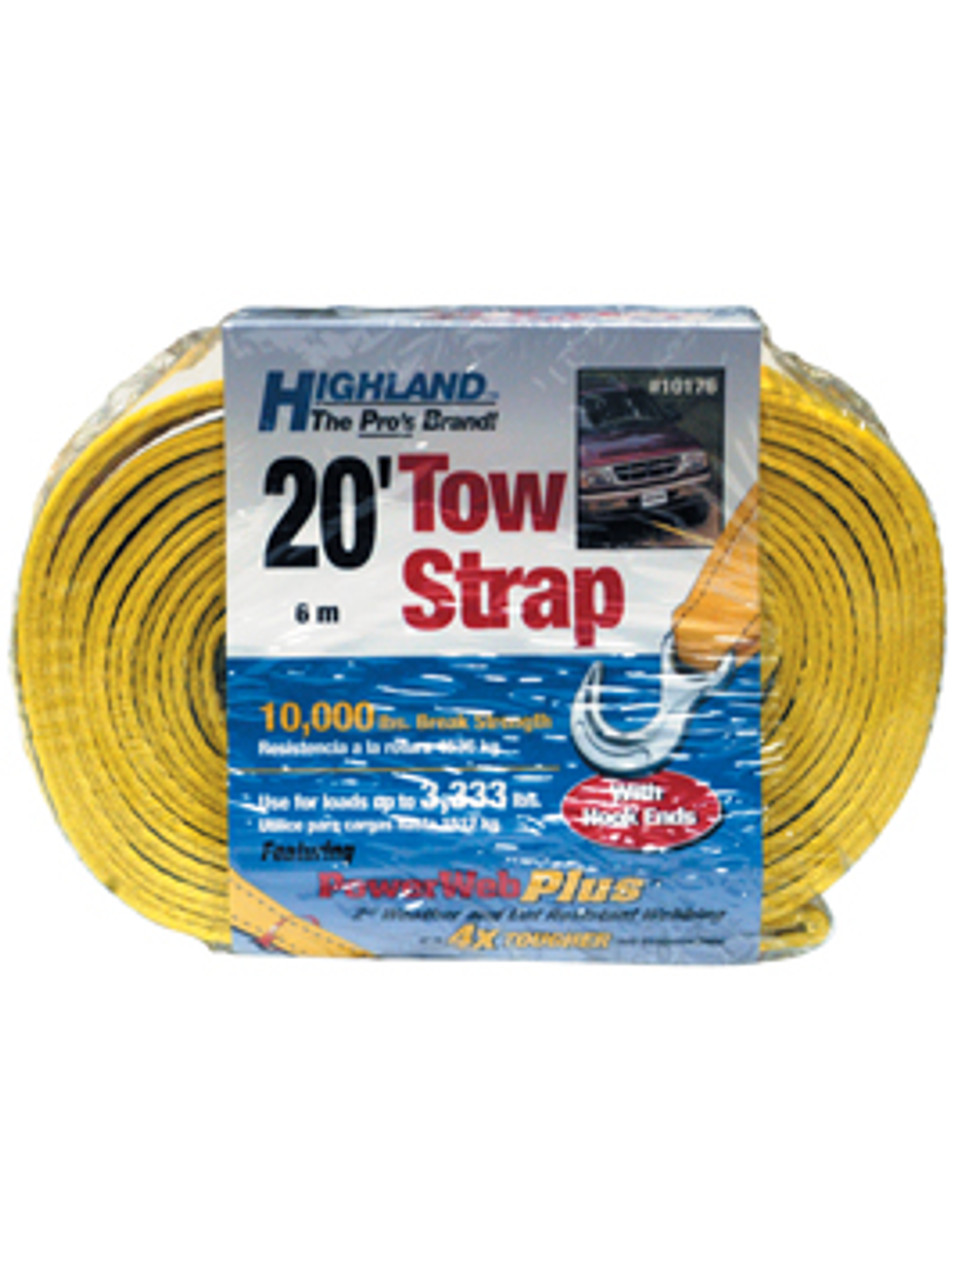 1017600 --- Highland Tow Strap with Hook Ends